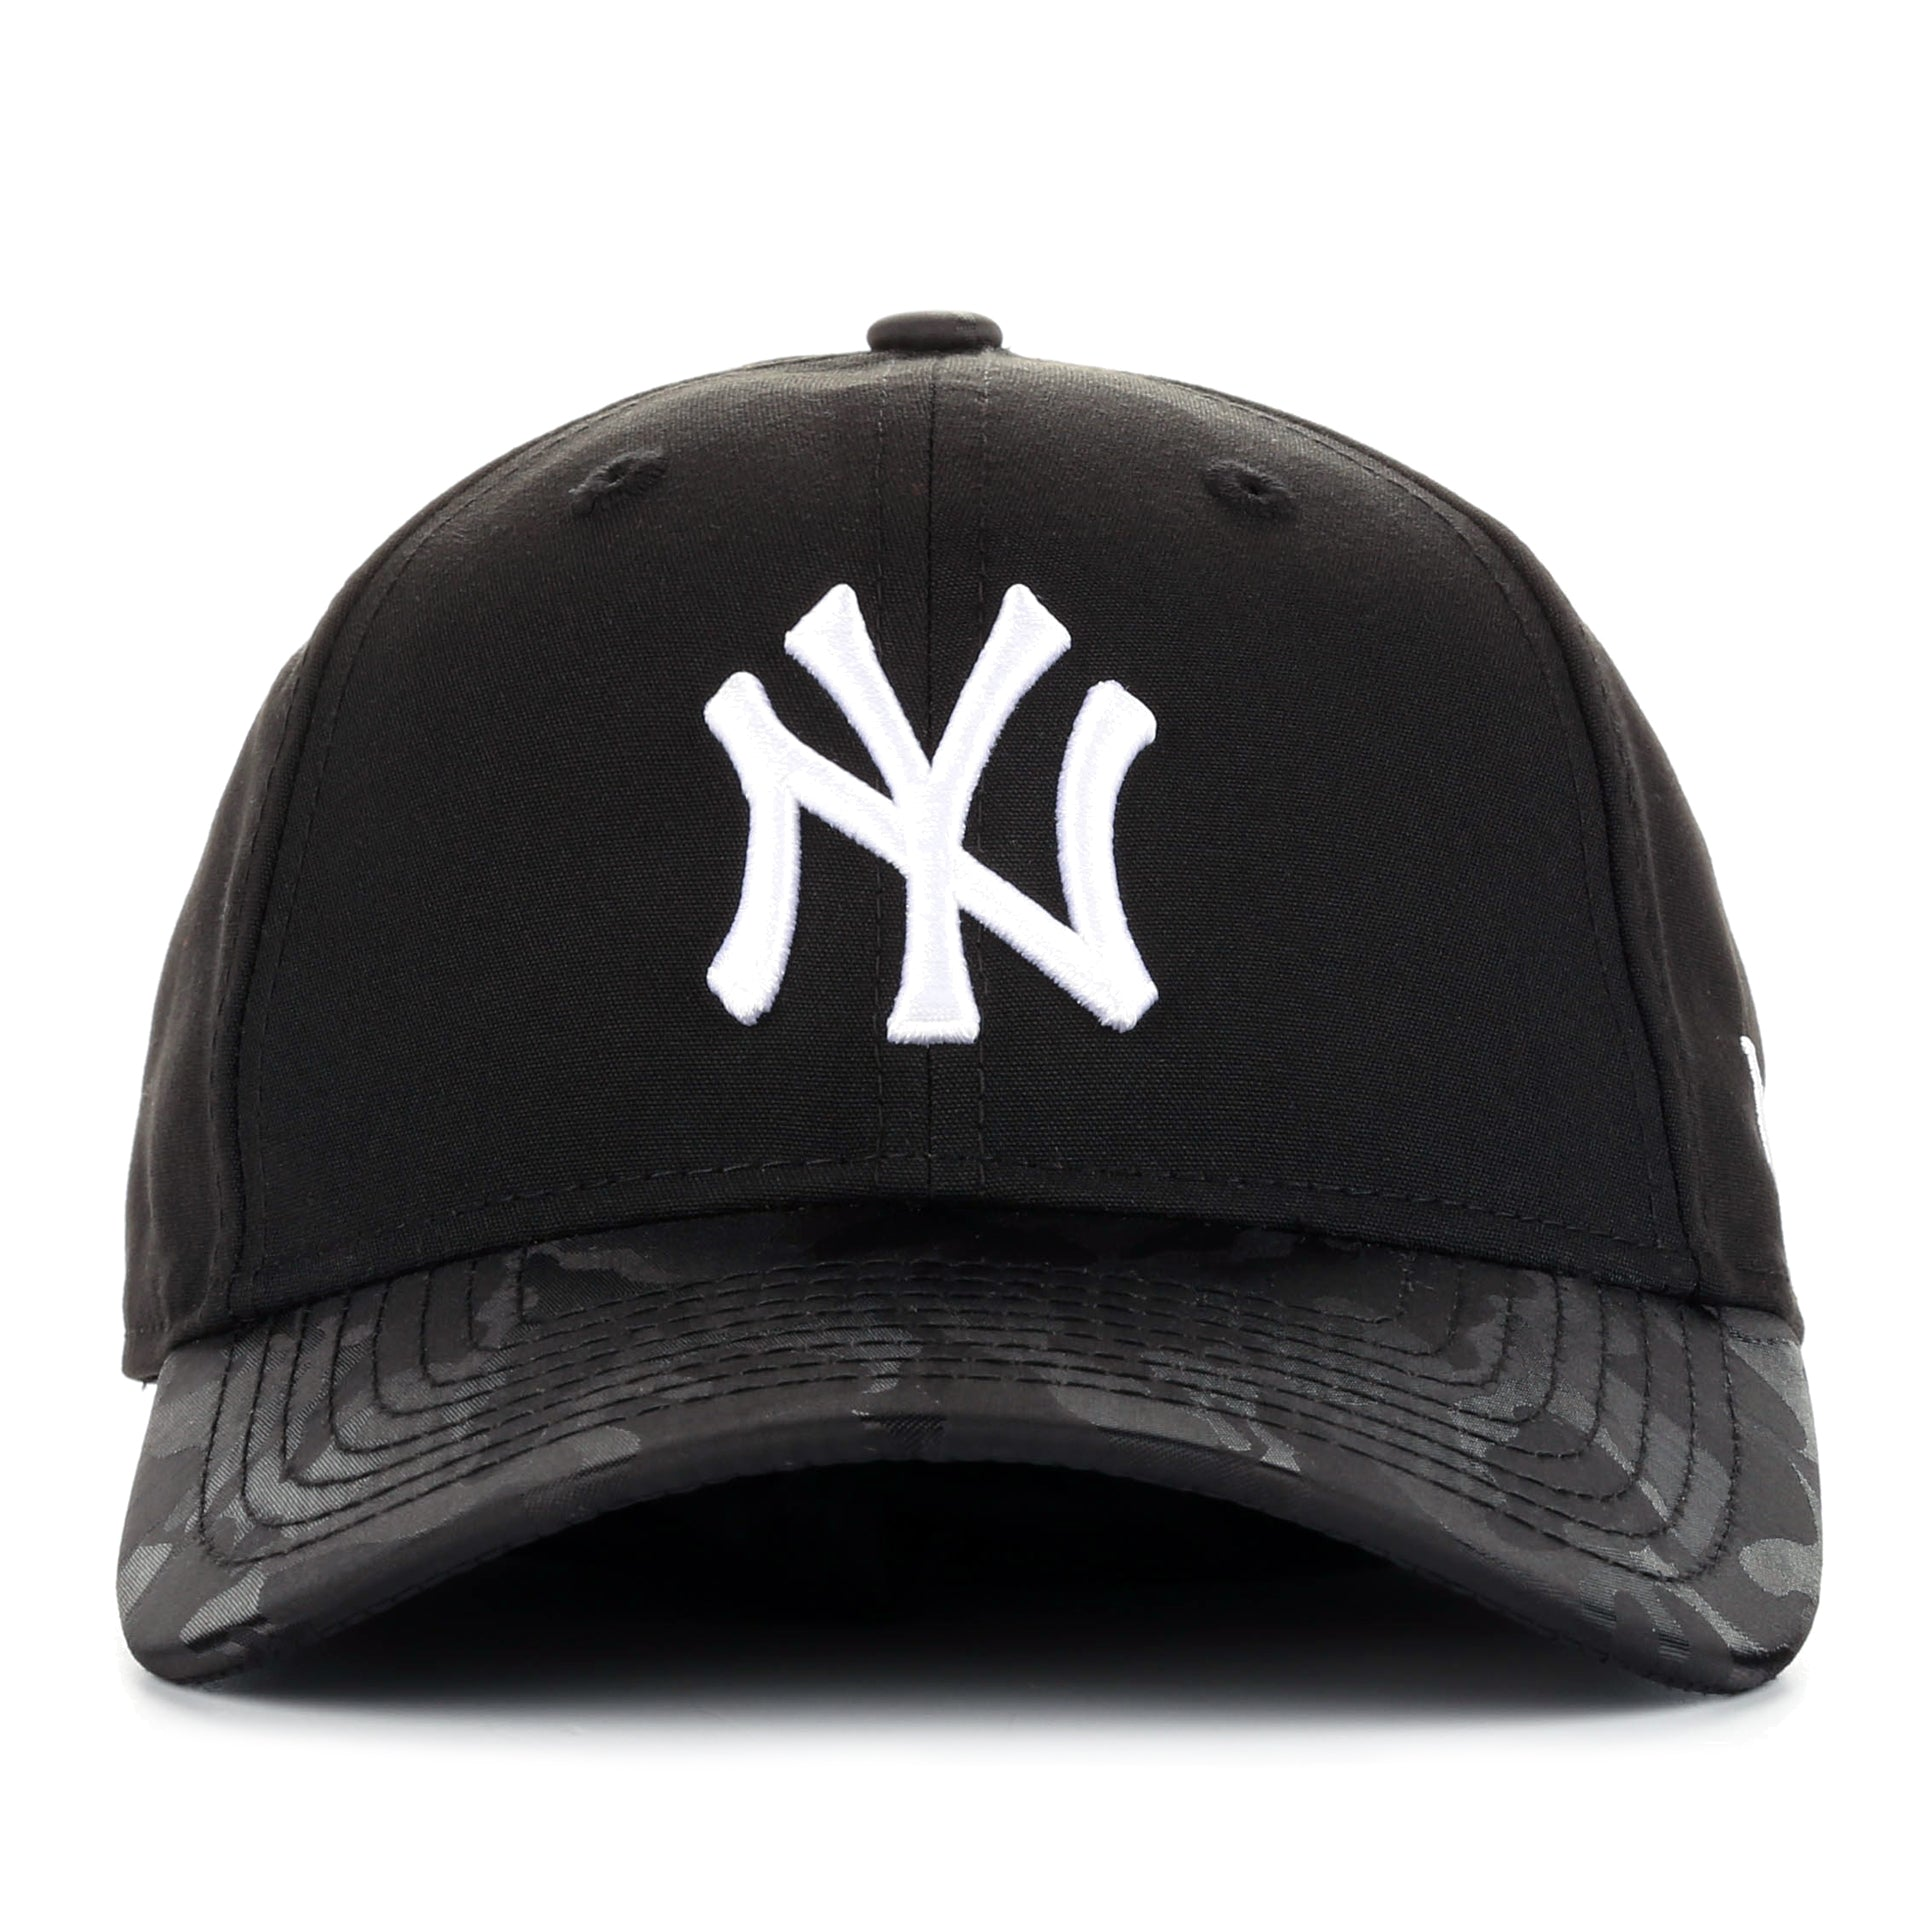 New Era 9Twenty Camo Shade Cap - New York Yankees Black - New Star 6d1c1d22e93